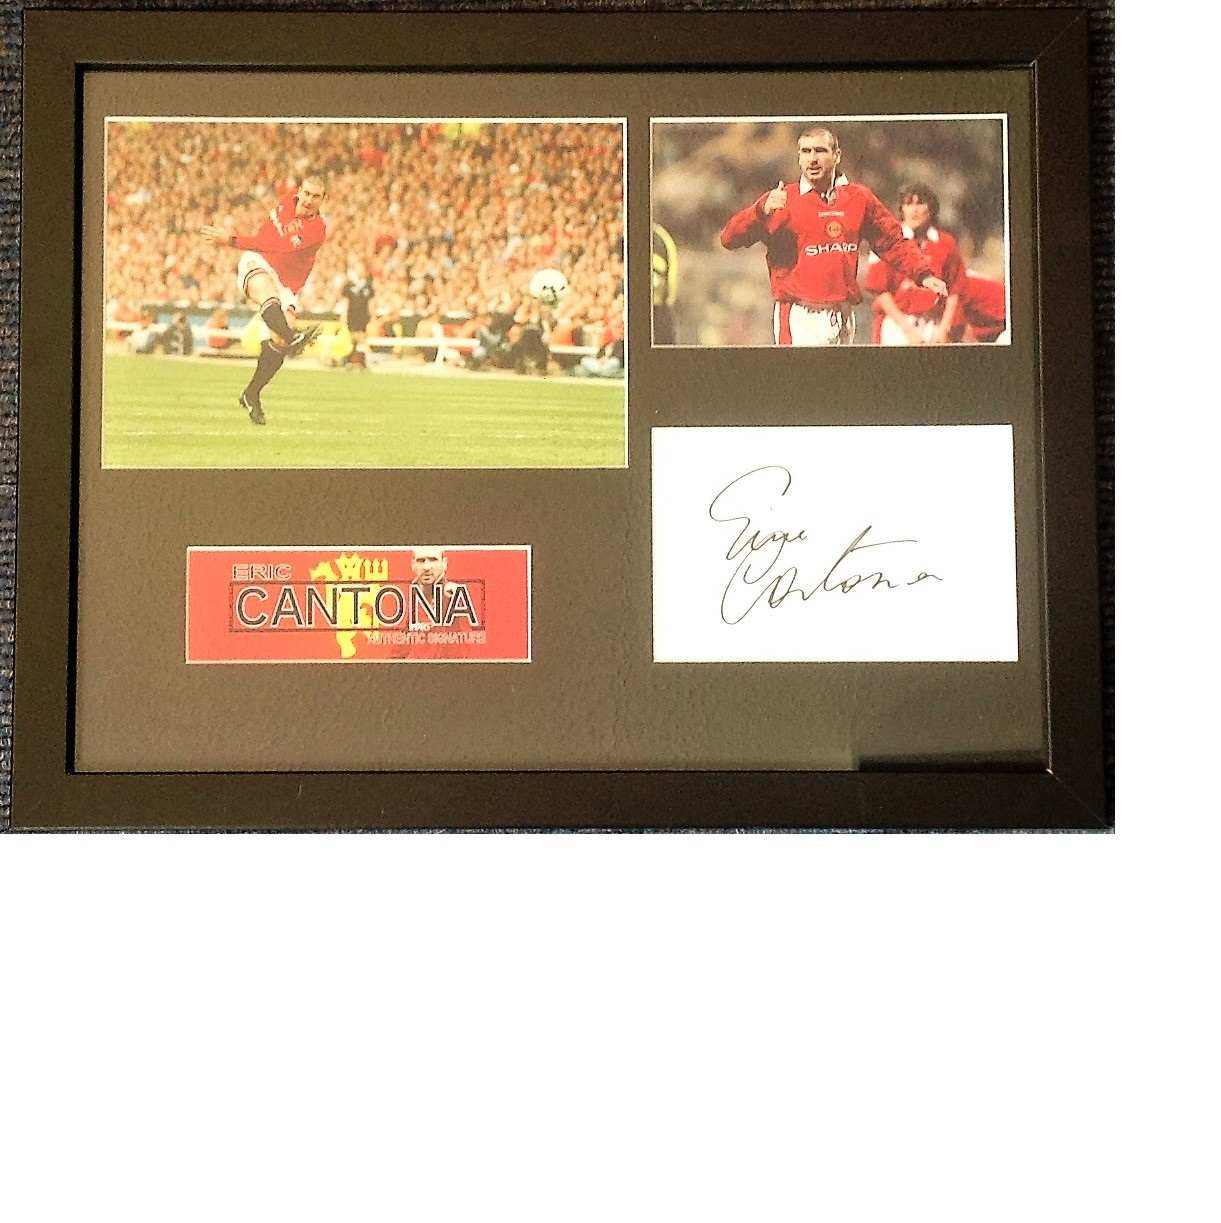 Lot 42 - Football Eric Cantona 14x17 framed and mounted signature piece includes Two colour photos and signed